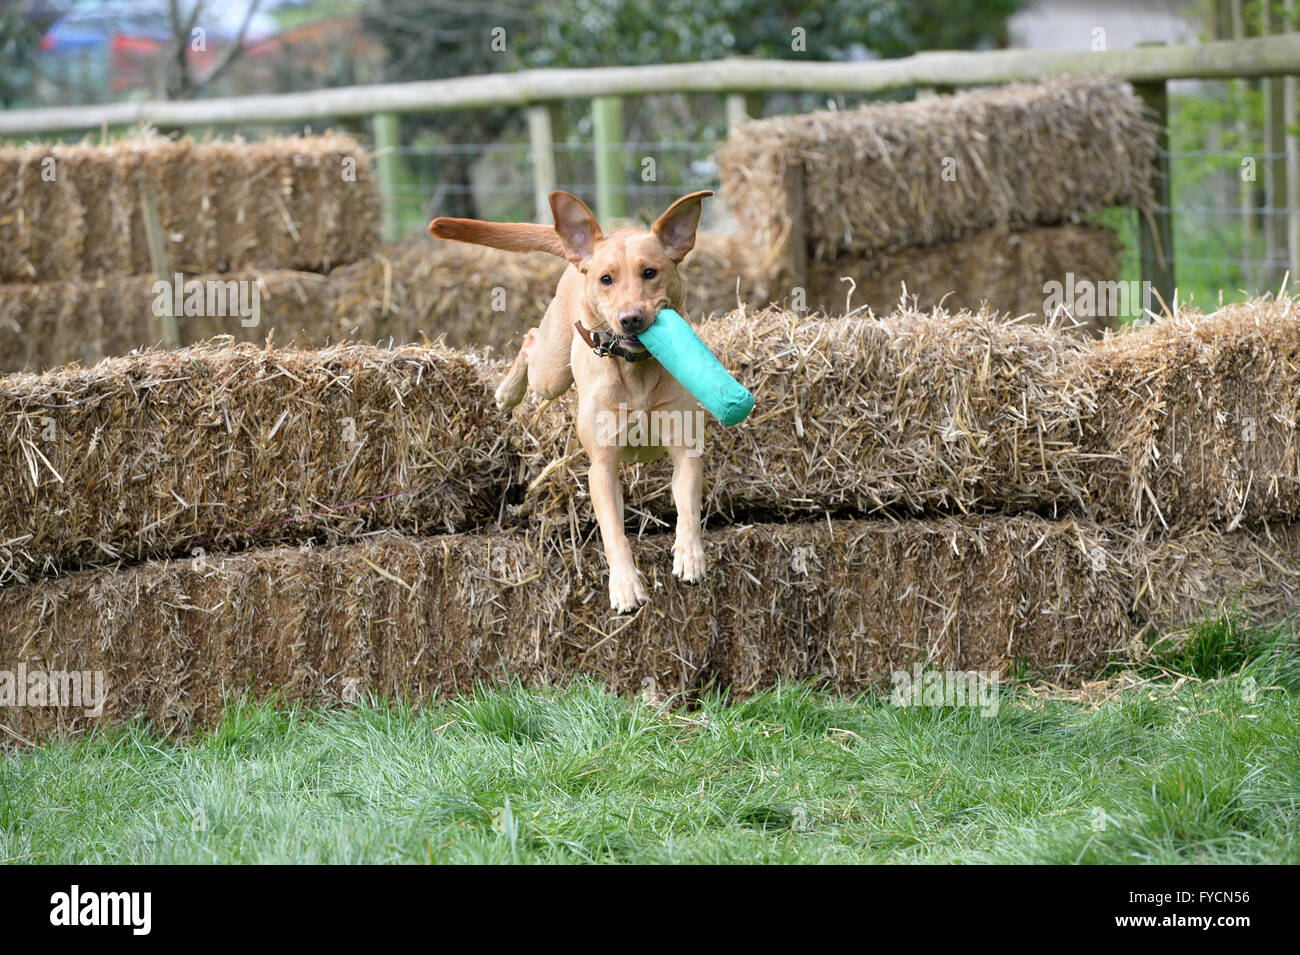 Dog leaping over straw bales in scurry event carrying green dummy yellow labrador cross type dog - Stock Image